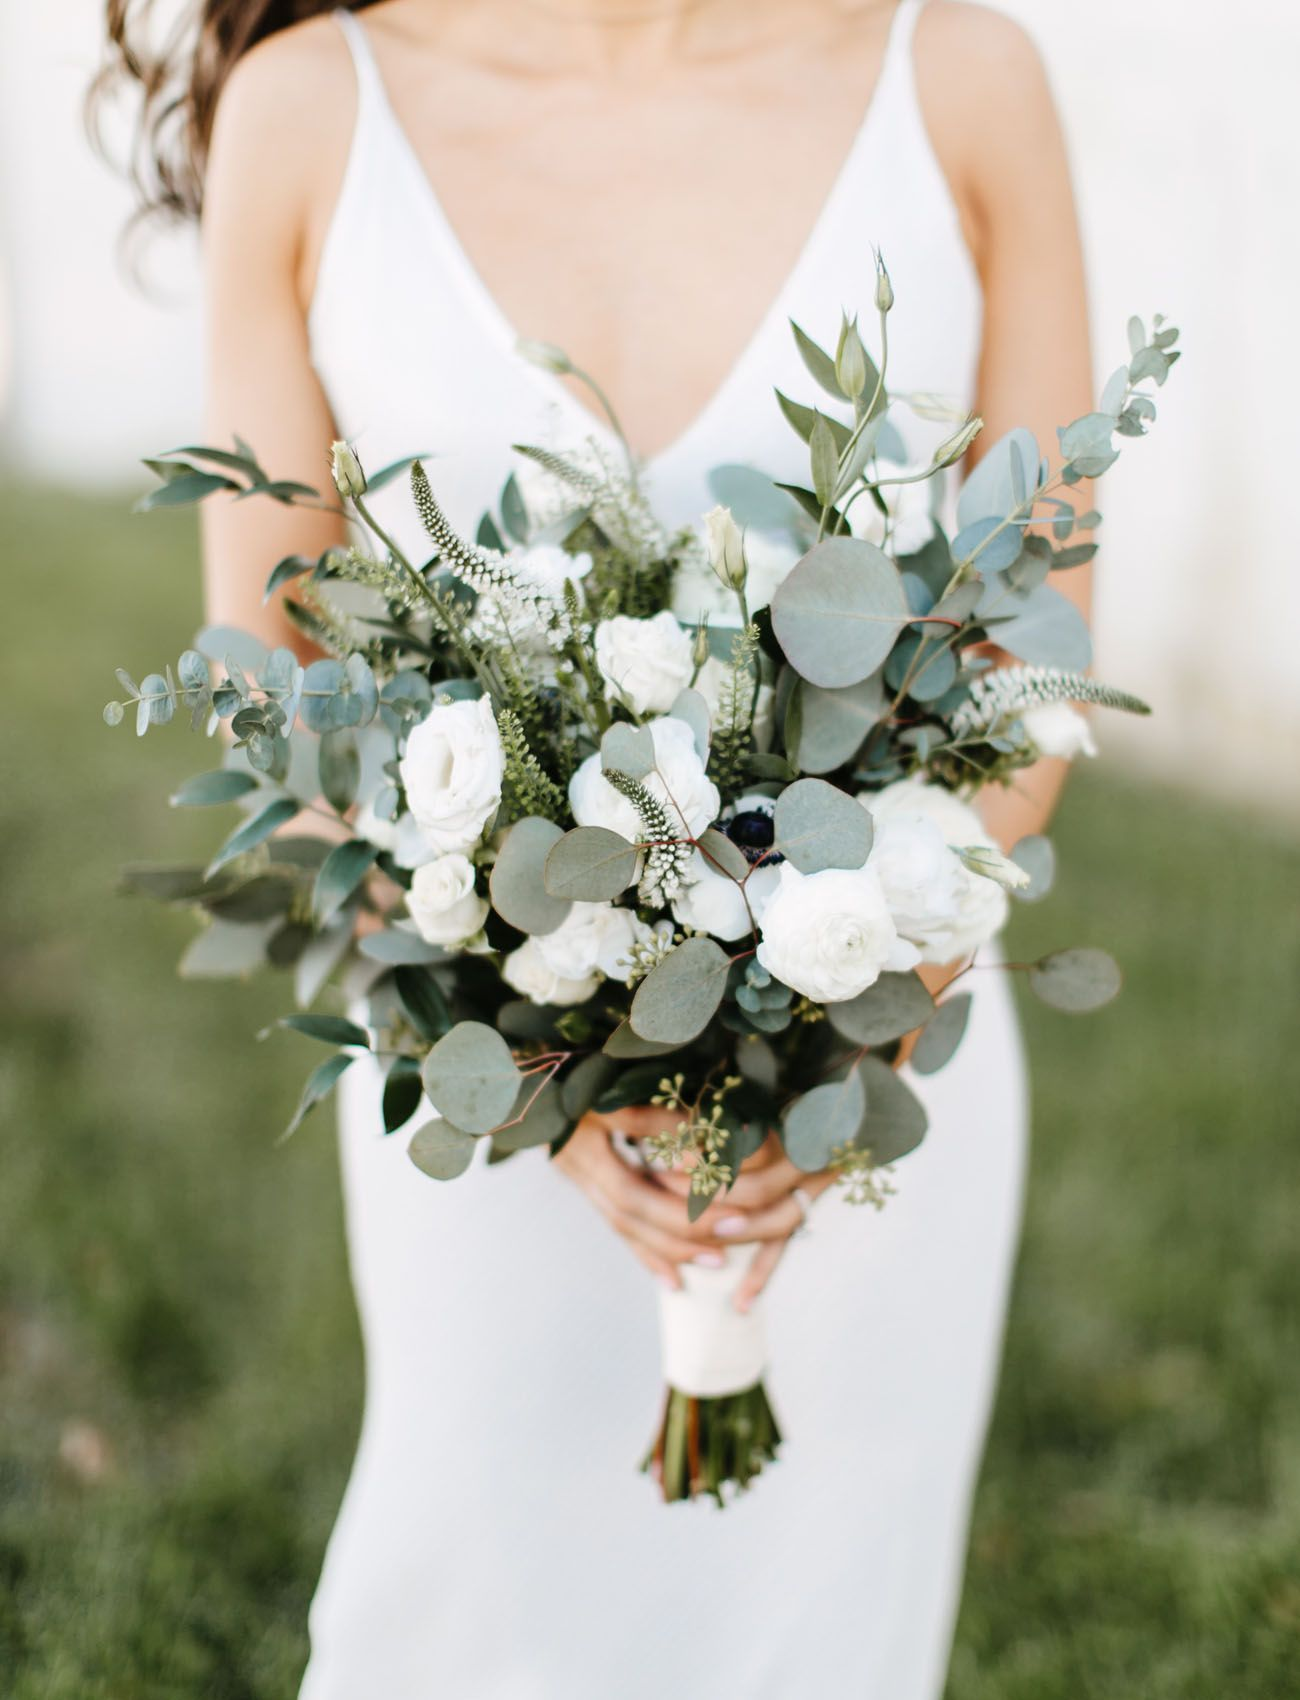 This Minimalistic + Modern Cityscape Wedding was Brimming with Greenery + Glam Details – Green Wedding Shoes #bridebouquets